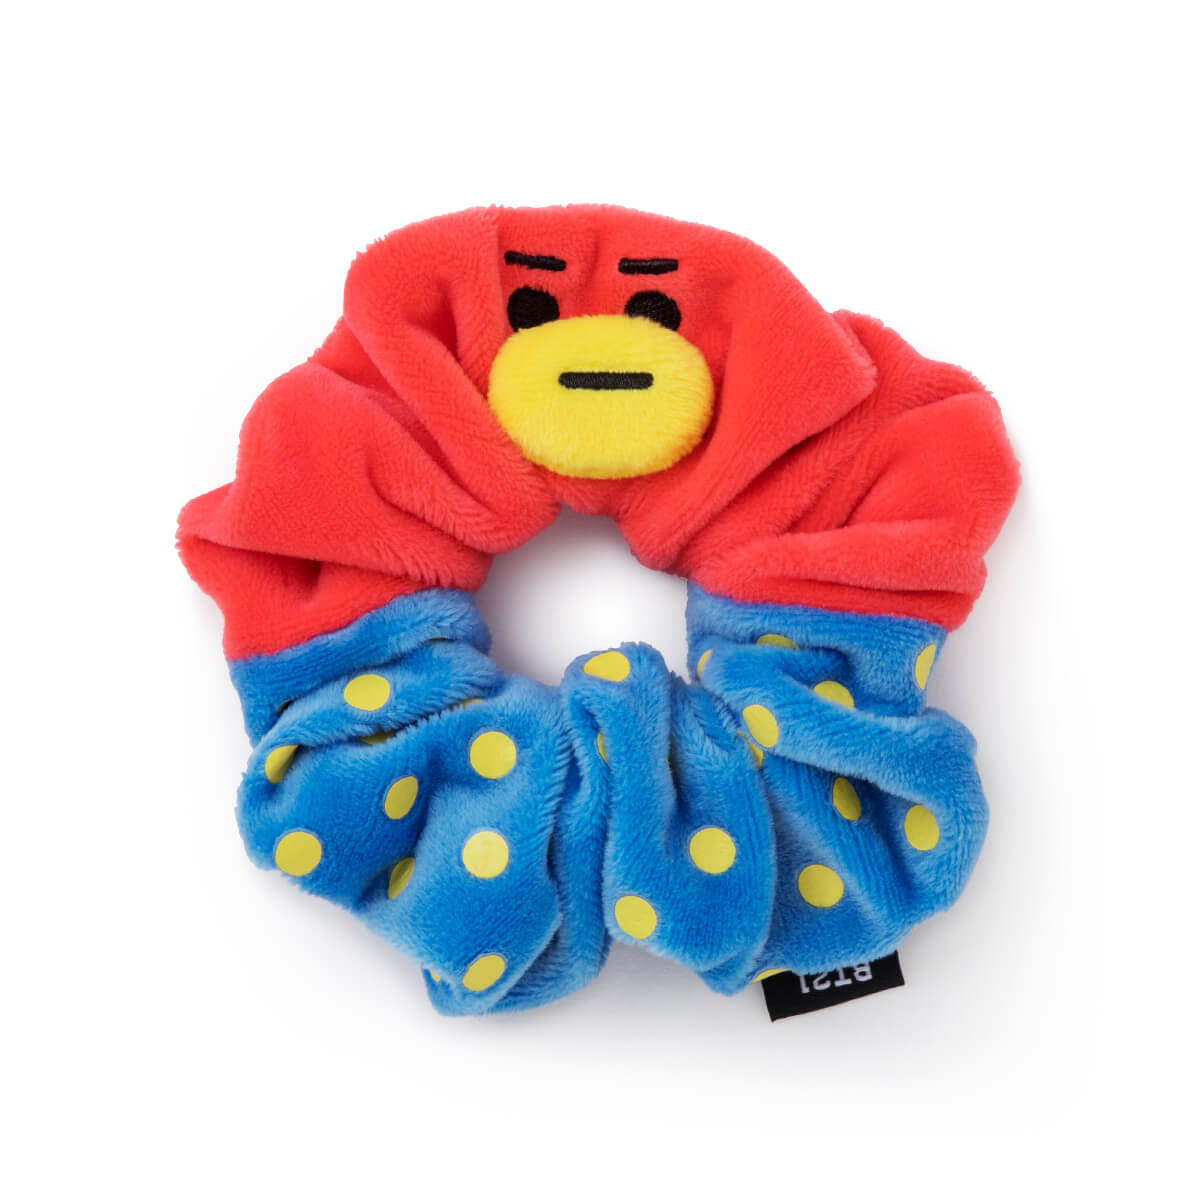 BT21 TATA Scrunchy Hair Tie Accessories